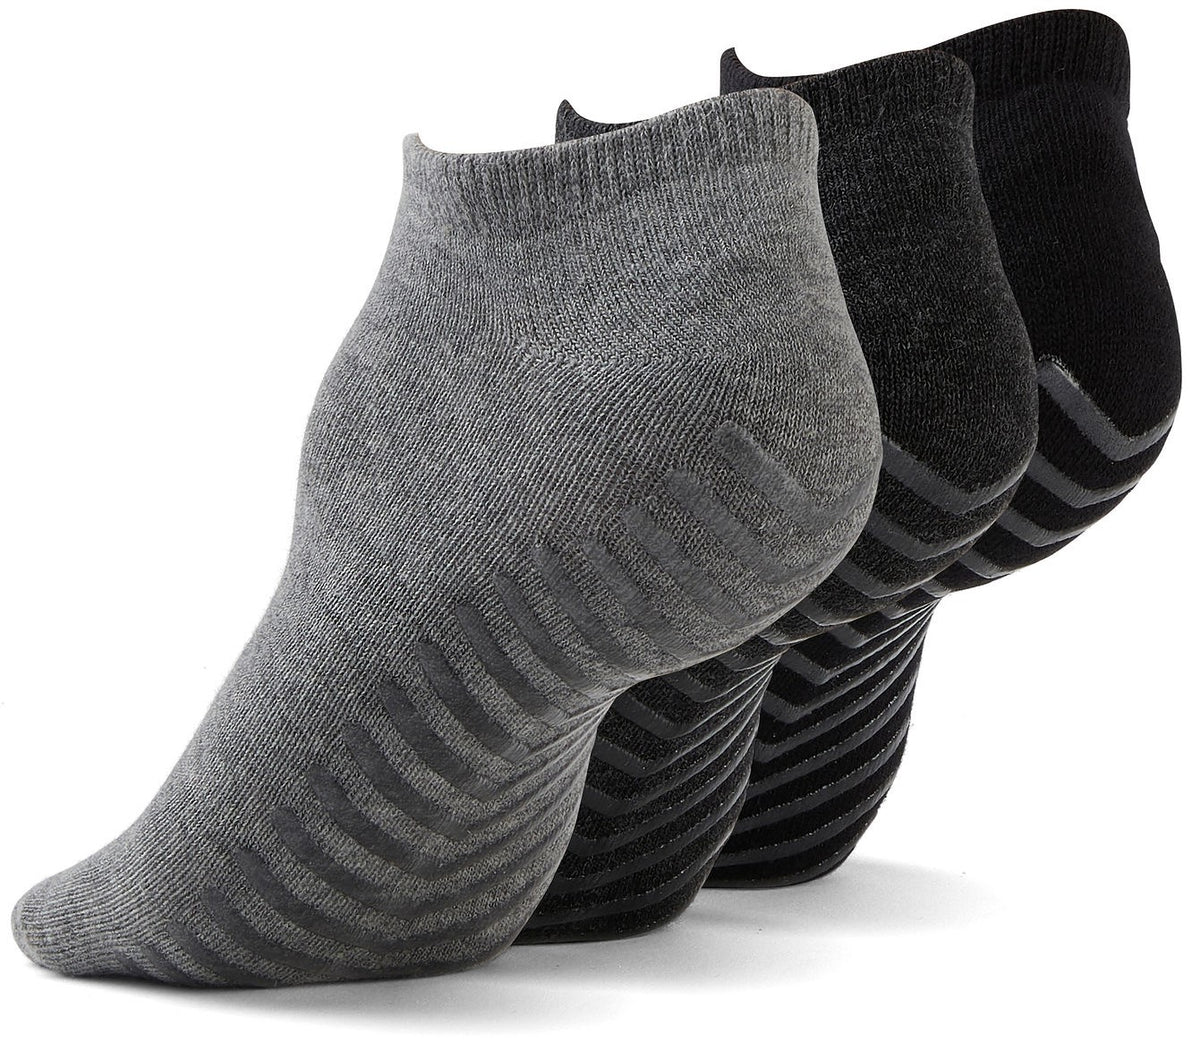 Women's Grip Socks - Ankle Socks with Non Skid x3 Pairs - Gripjoy Socks